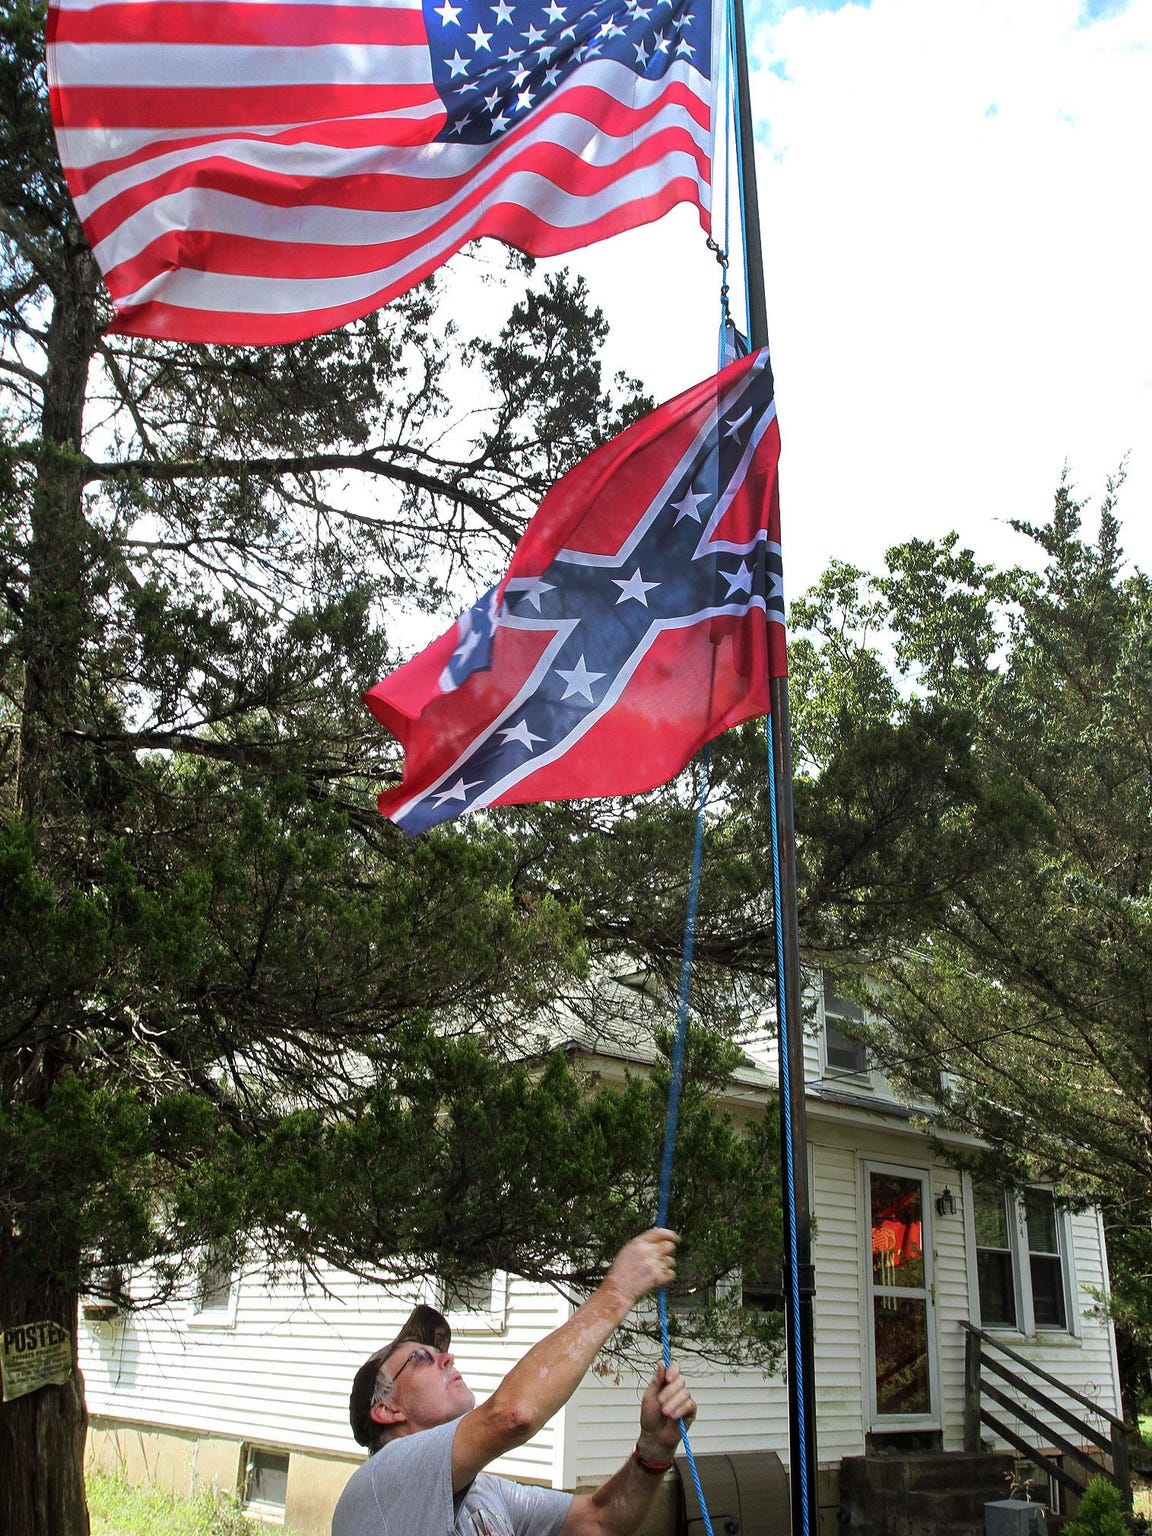 """Al Wright straightens the flags outside his home on Cedar Swamp Road in Jackson Township. The decades-long resident, who is weary of the changes in Jackson, believes the Confederate flag serves as a reminder that """"fathers and brothers"""" died flying it during the Civil War."""